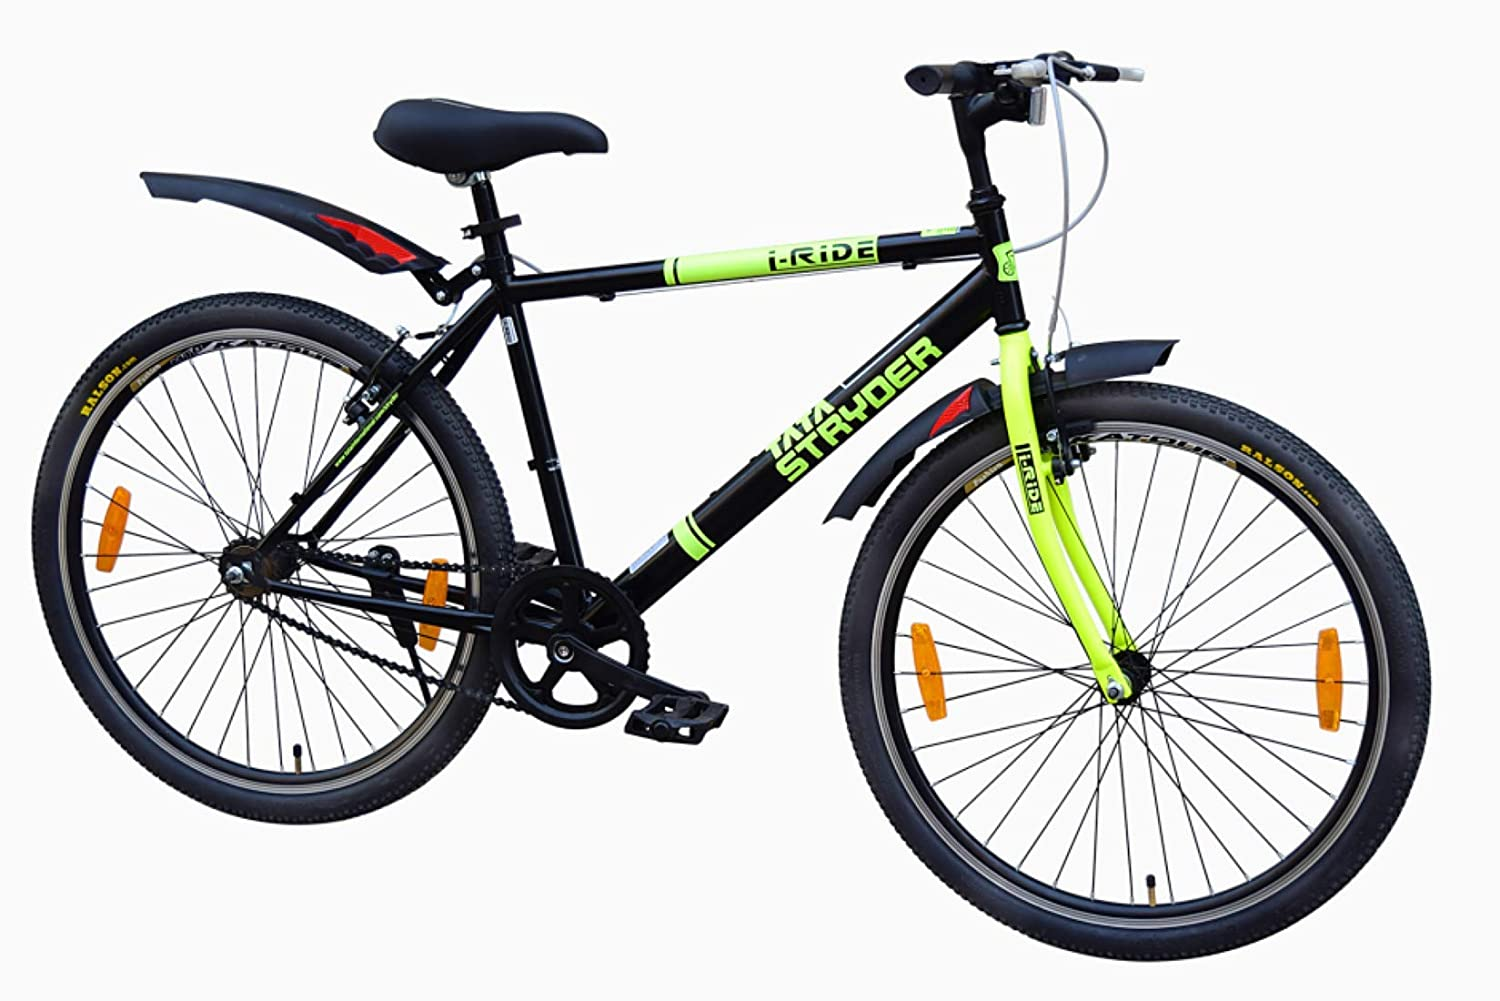 1a24eb4303c Tata stryder black green i ride inches road cycle semi installed sports  fitness outdoors jpg 1500x1001